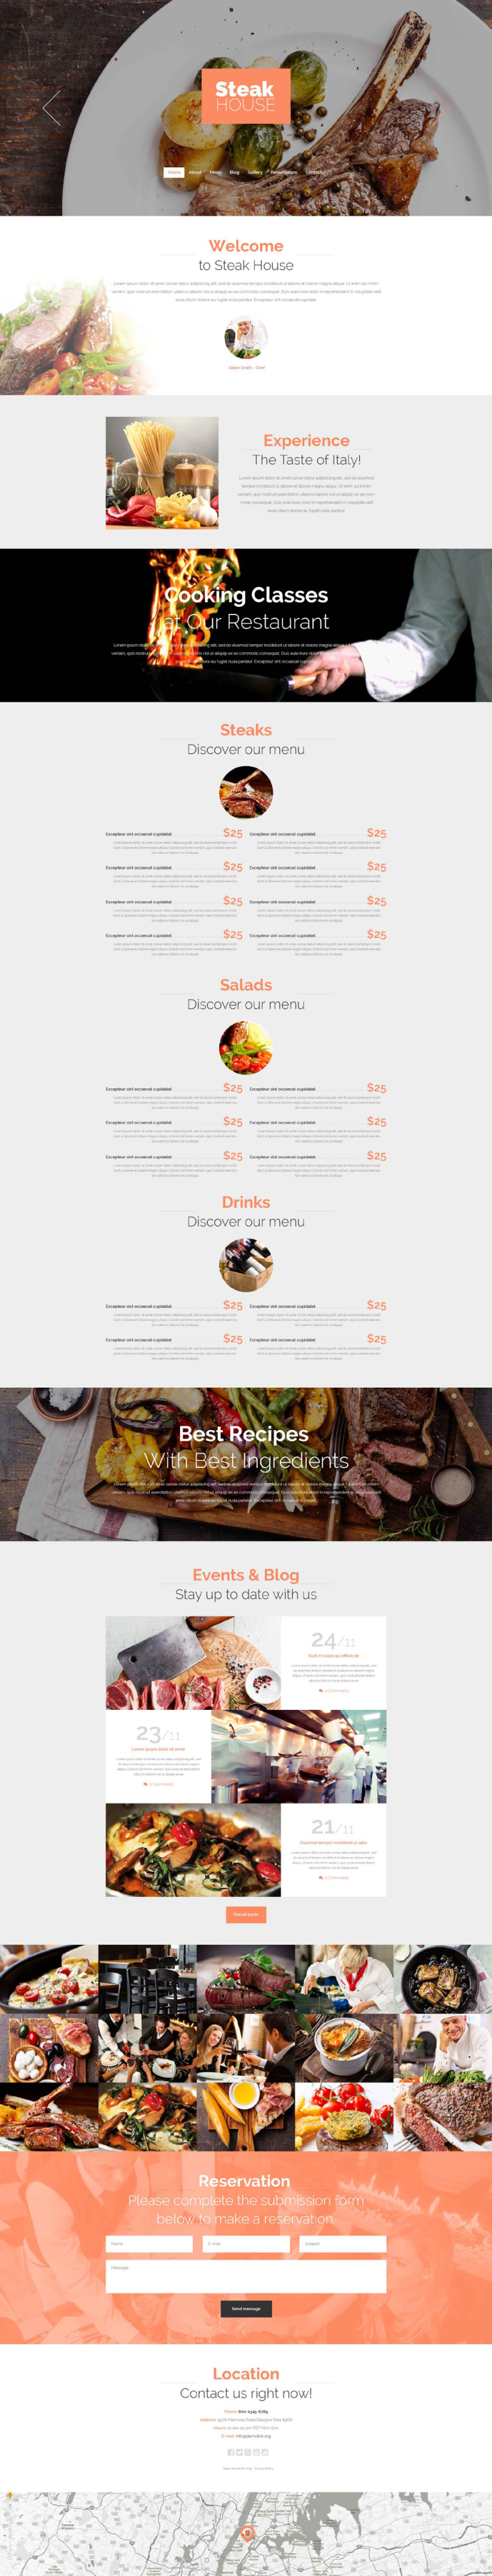 Cafe and Restaurant Drupal Template New Screenshots BIG